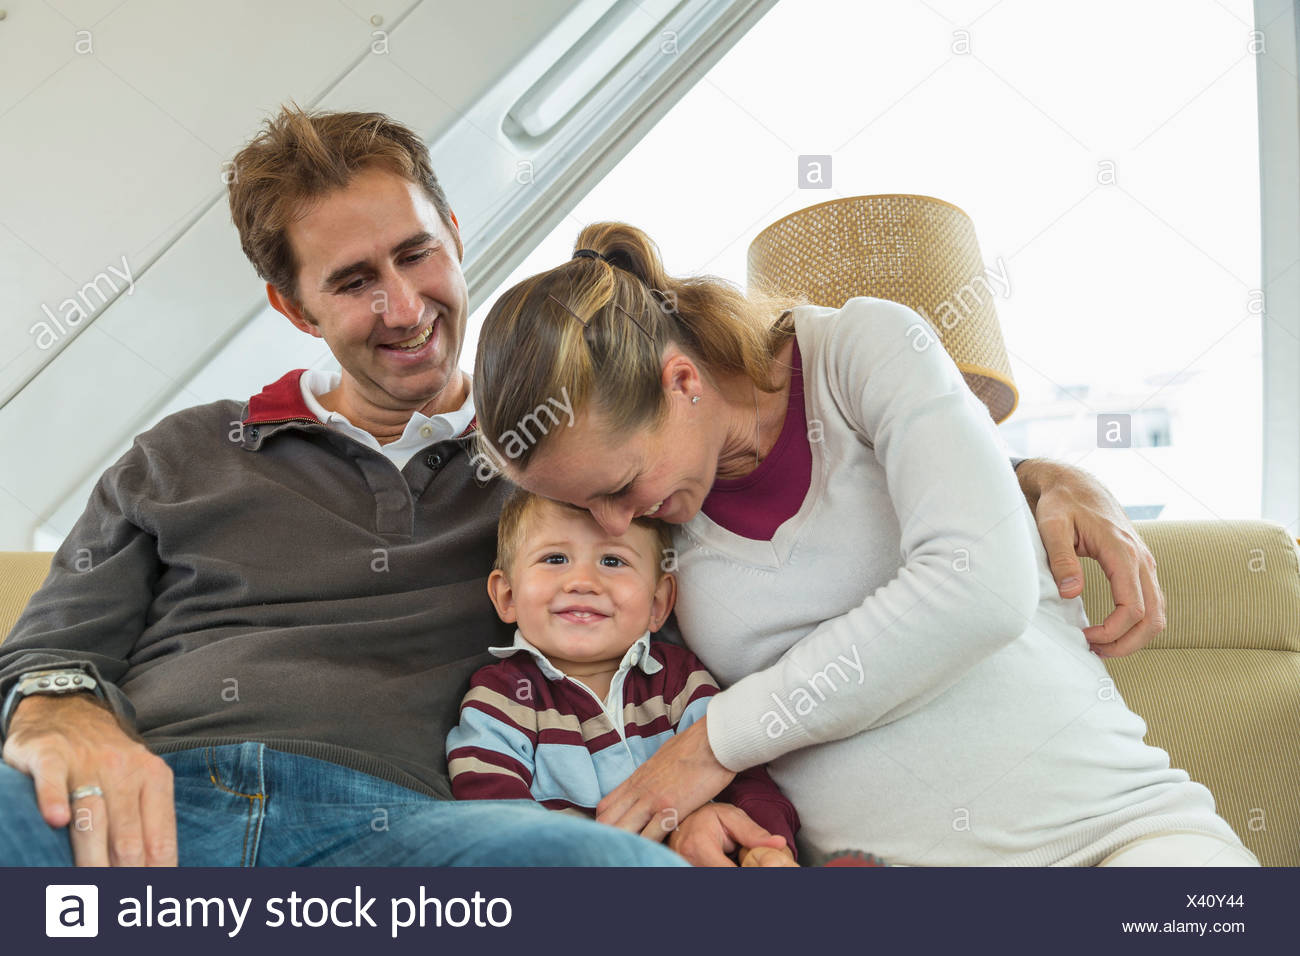 Mid adult couple and toddler son sitting on couch - Stock Image